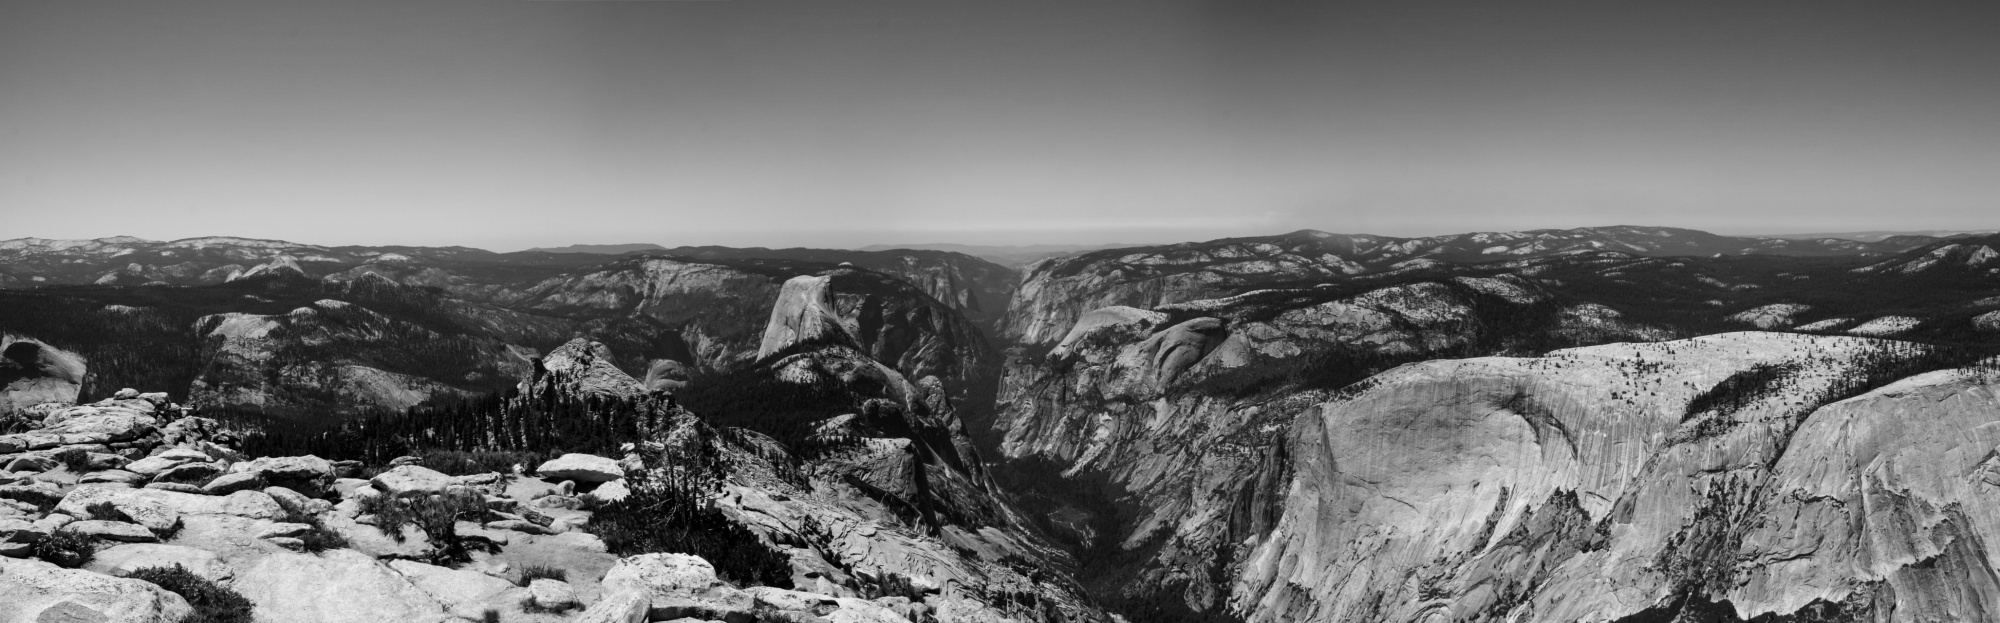 Yosemite valley - View on from the Clouds Rest